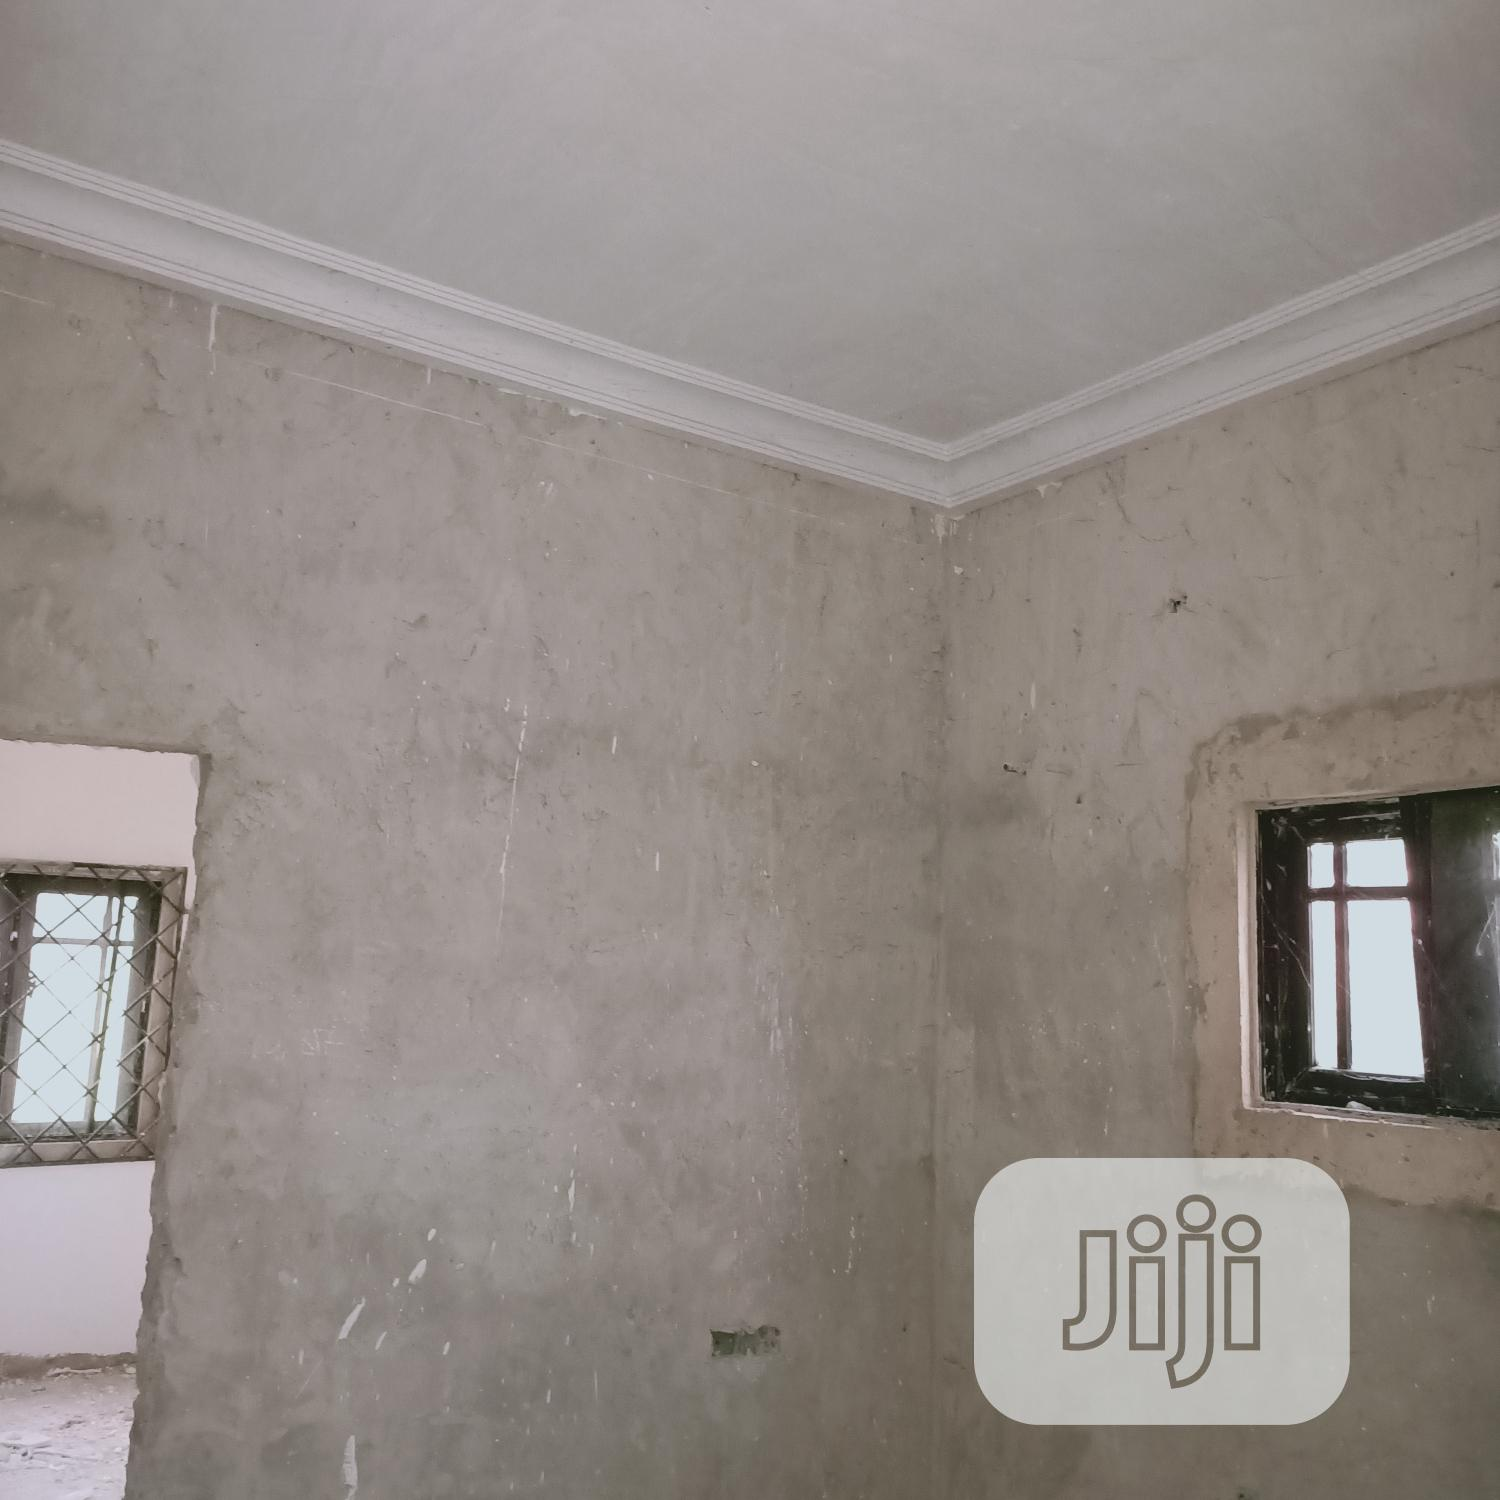 Brand New Exquisite 80% Complete 3-bedroom Bungalow At Ohobi | Houses & Apartments For Sale for sale in Benin City, Edo State, Nigeria